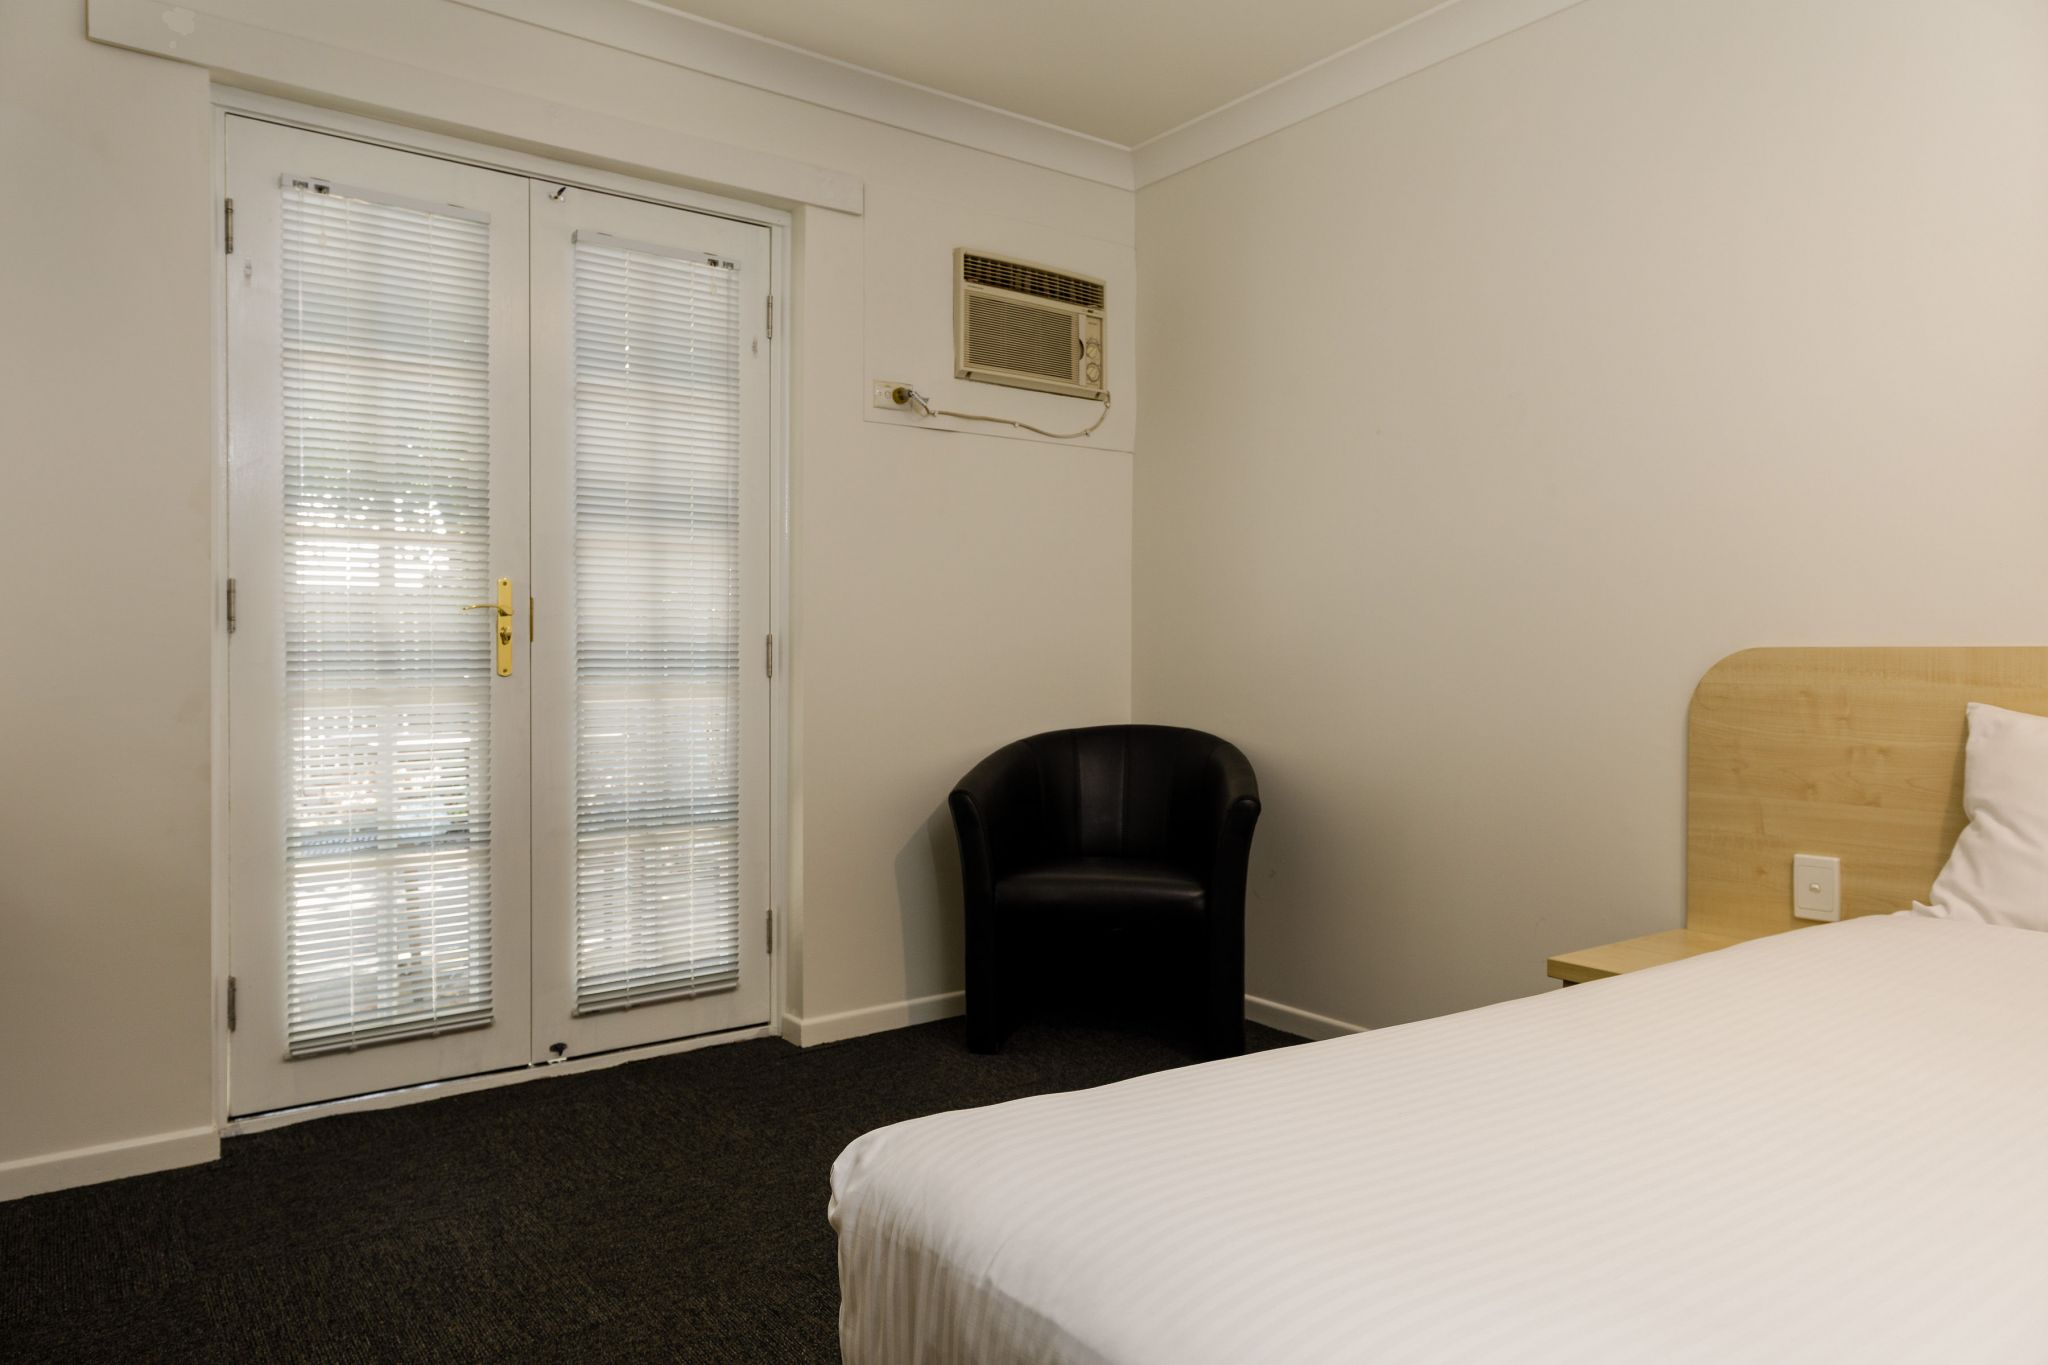 Waterloo Bay Hotel - Motel Accommodation - Byrneside Queen Motel Room 2